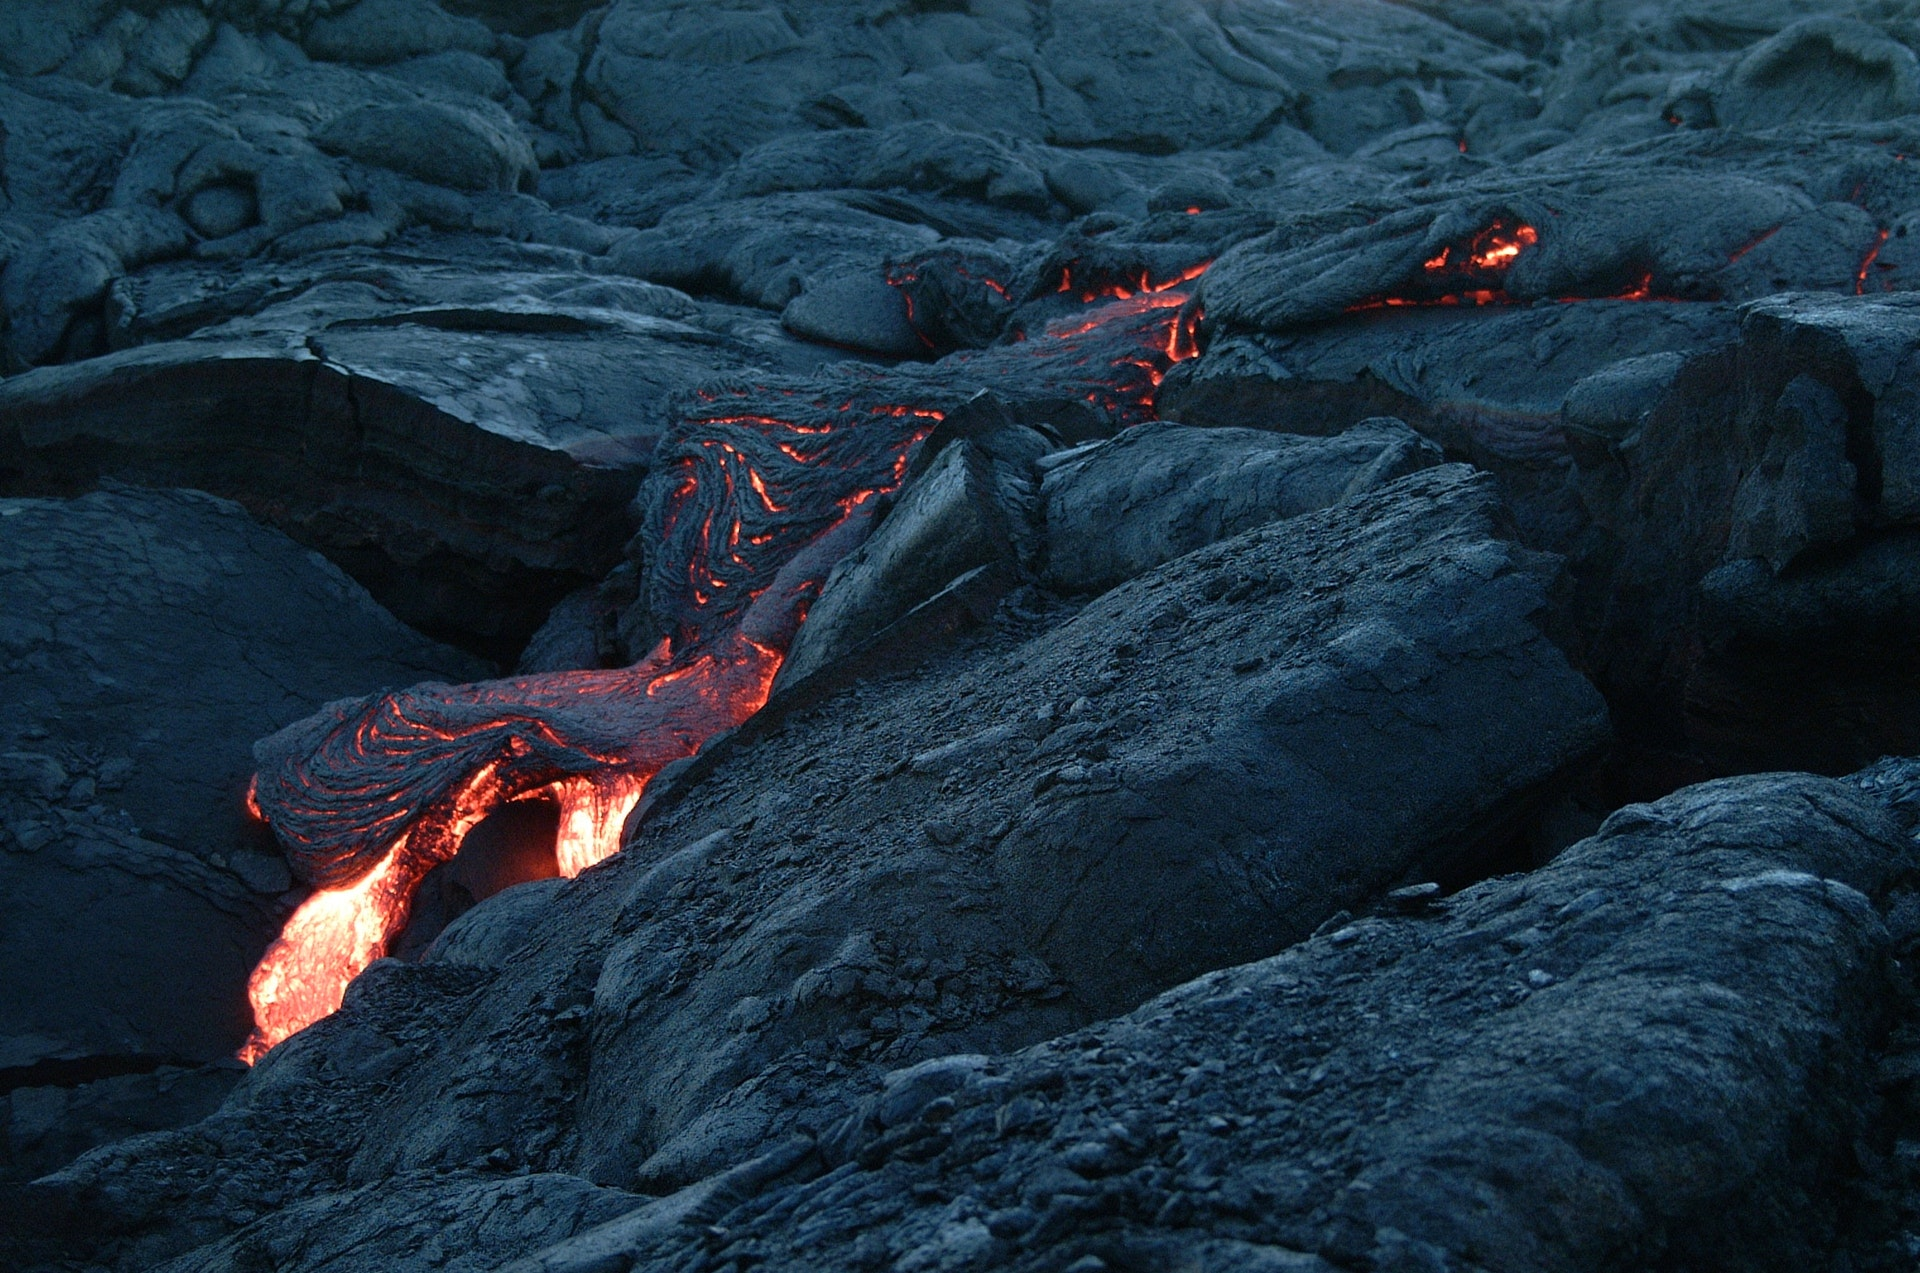 Magma flowing under cooled magma